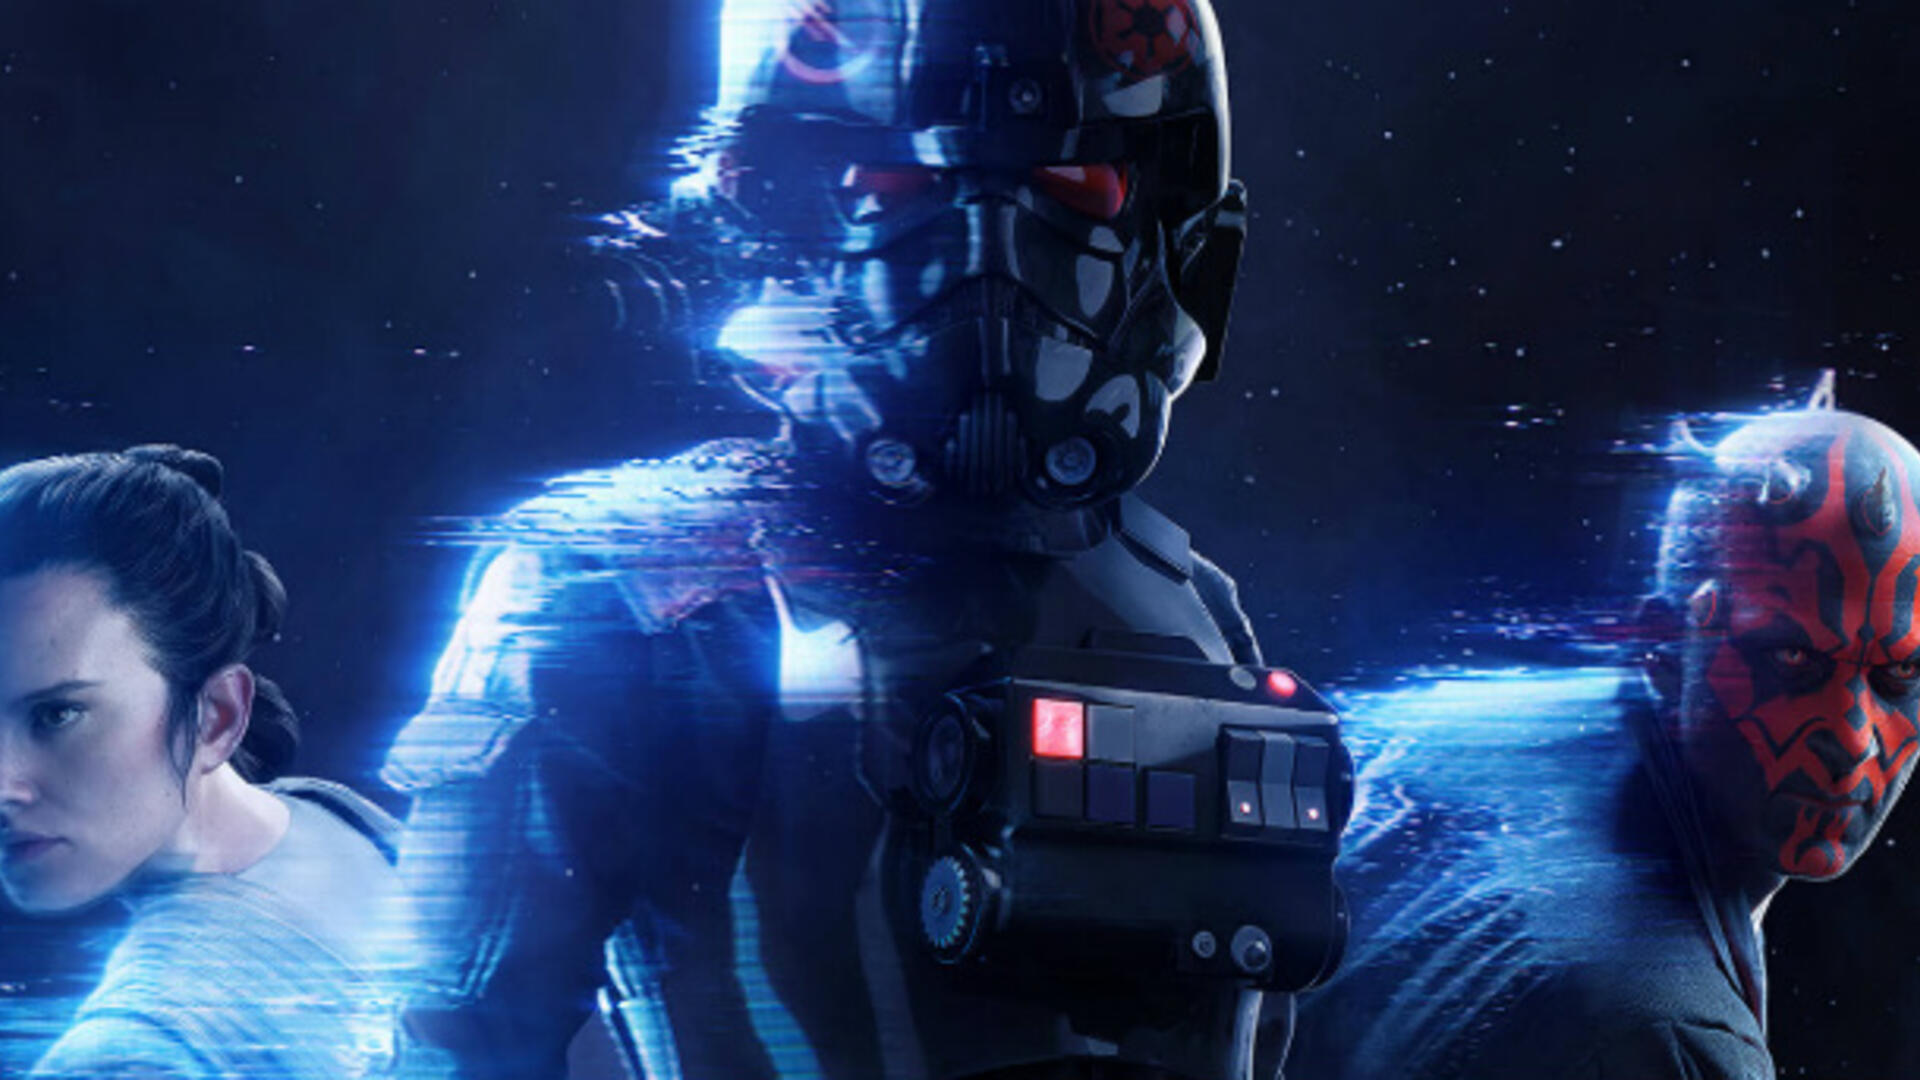 Is There a Risk of Star Wars Battlefront 2 Being Pay to Win?